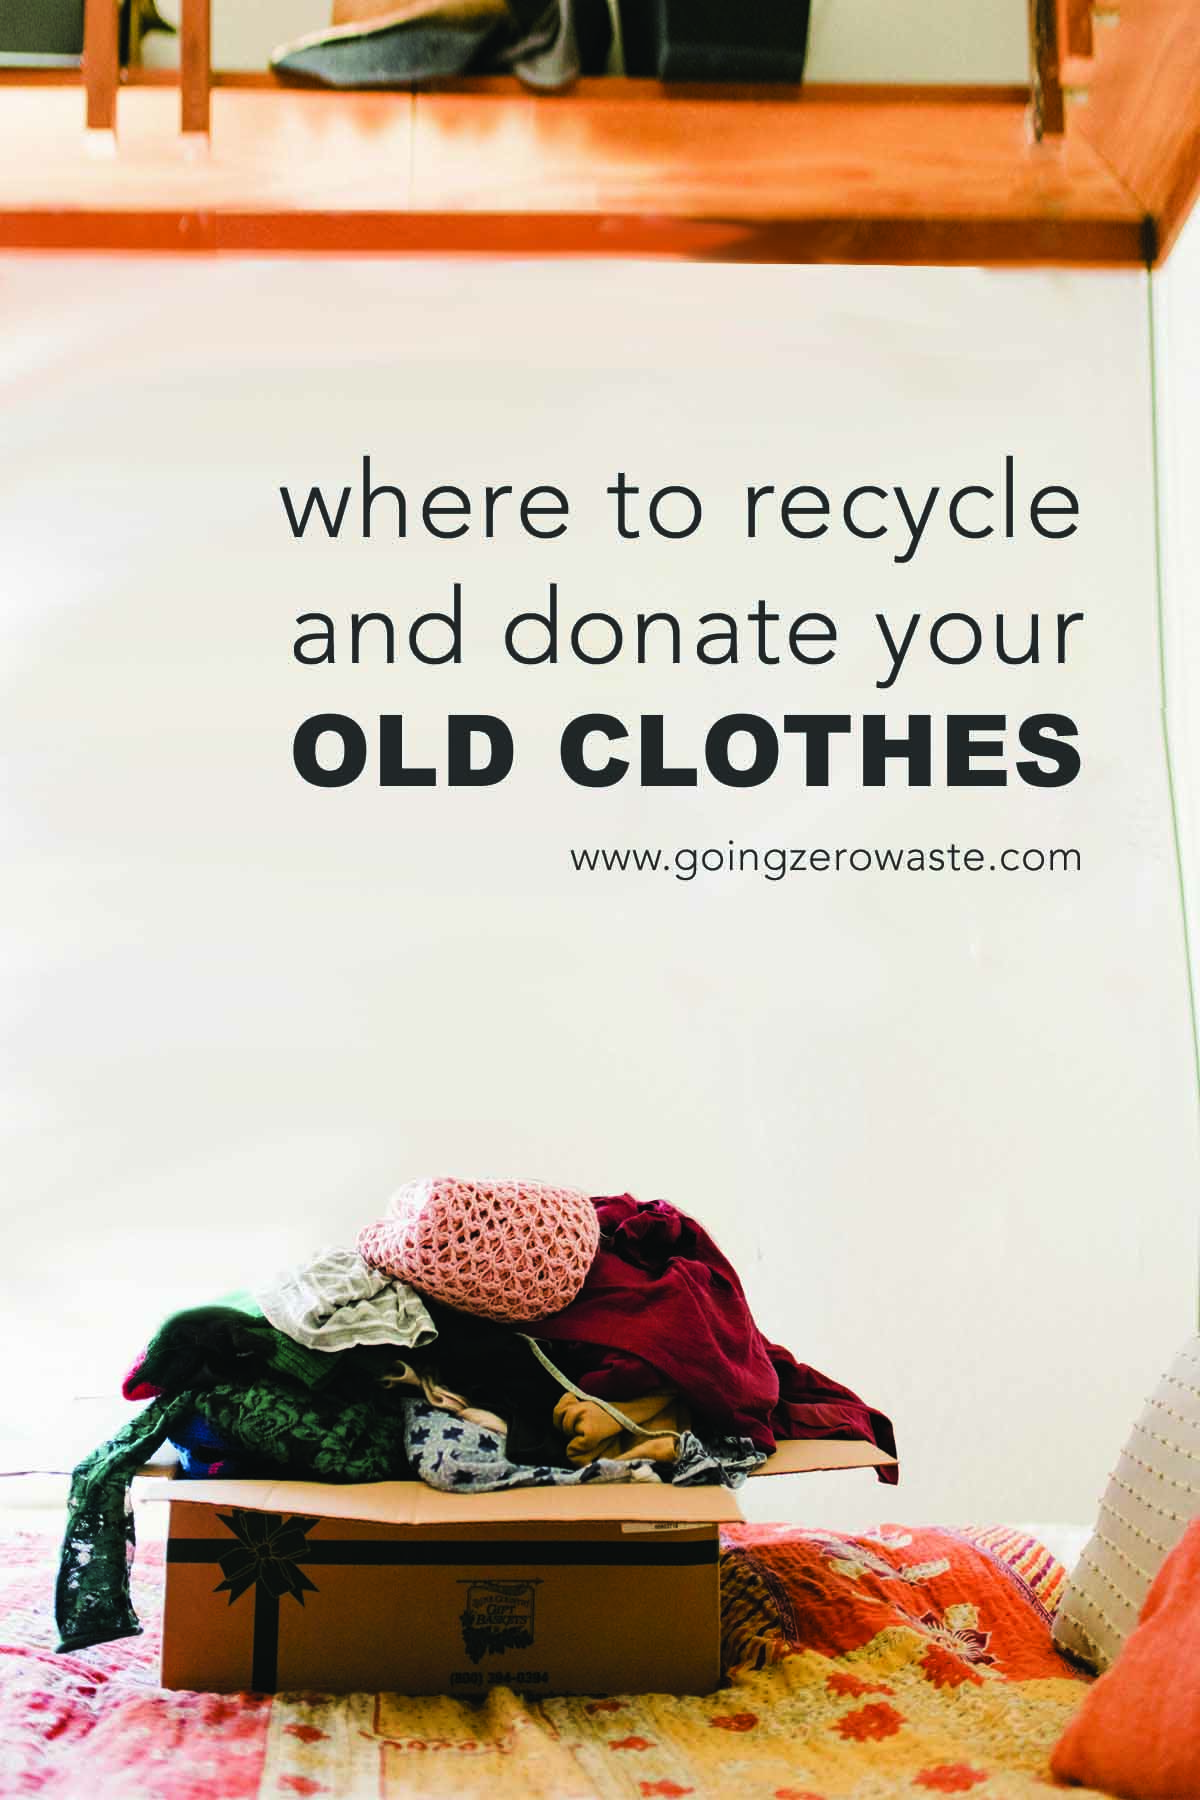 Where to Recycle and Donate Your Old Clothes from www.goingzerowaste.com #secondhand #recycle #zerowaste #clothing #textilerecycling #upcycle